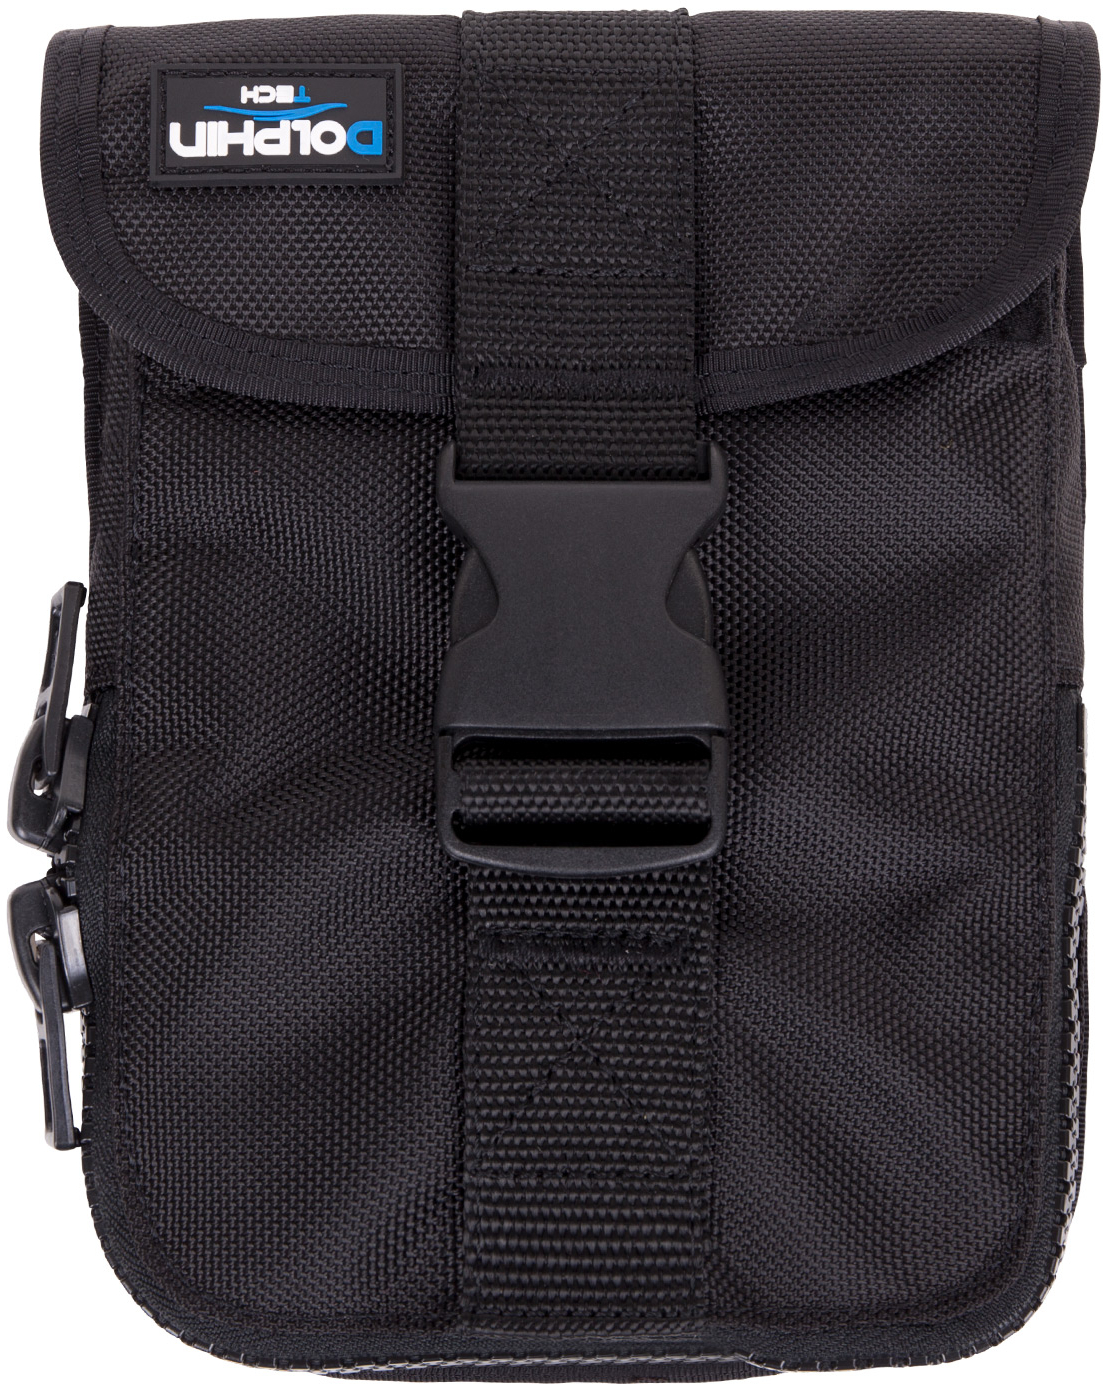 Dolphin Tech By IST Technical Diving 15.4lb Weight Pockets (EACH)